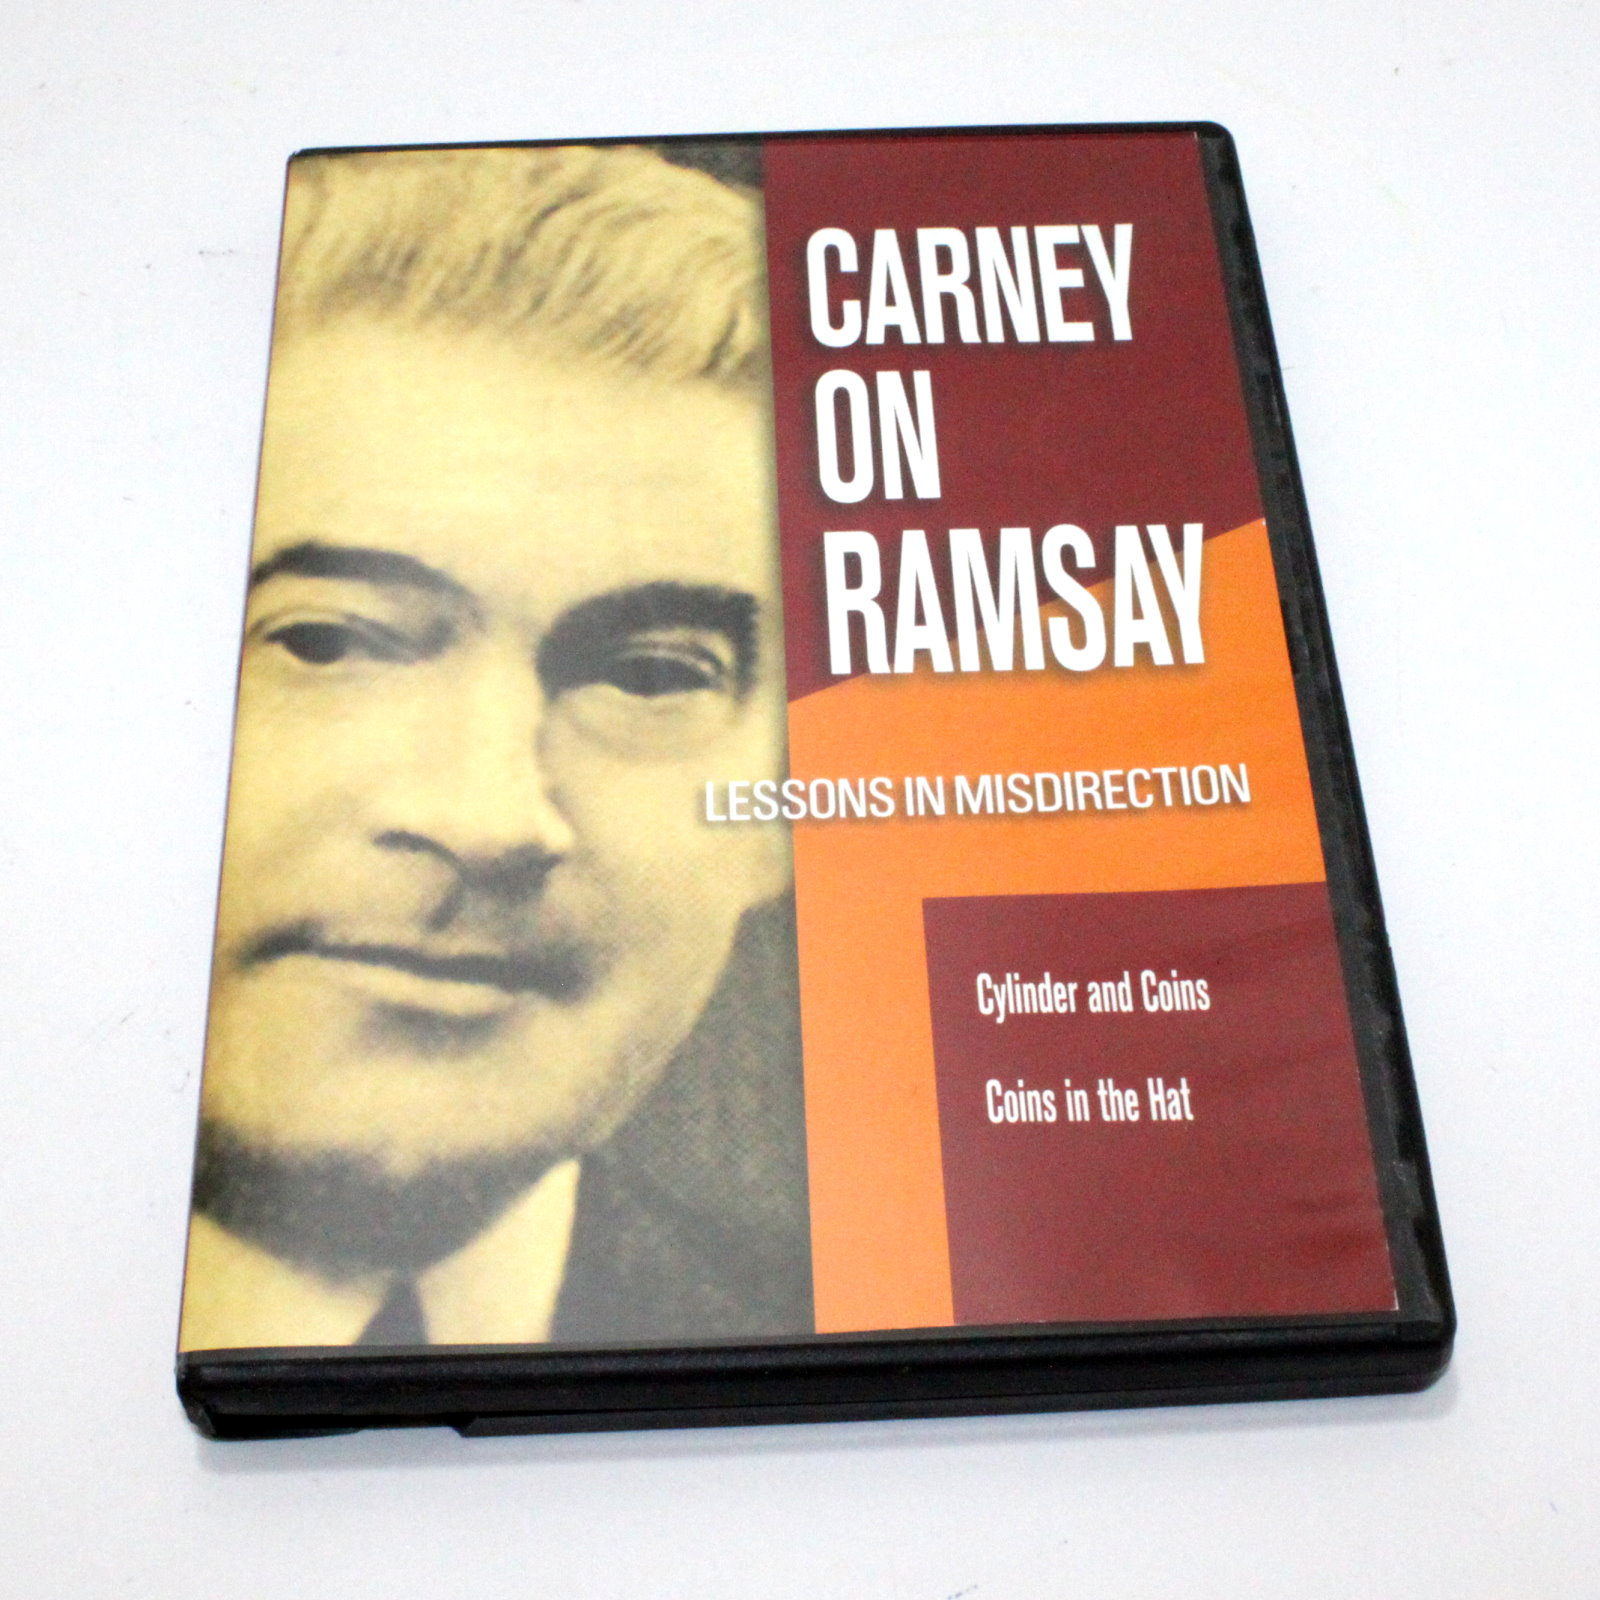 Carney on Ramsay DVD by John Carney